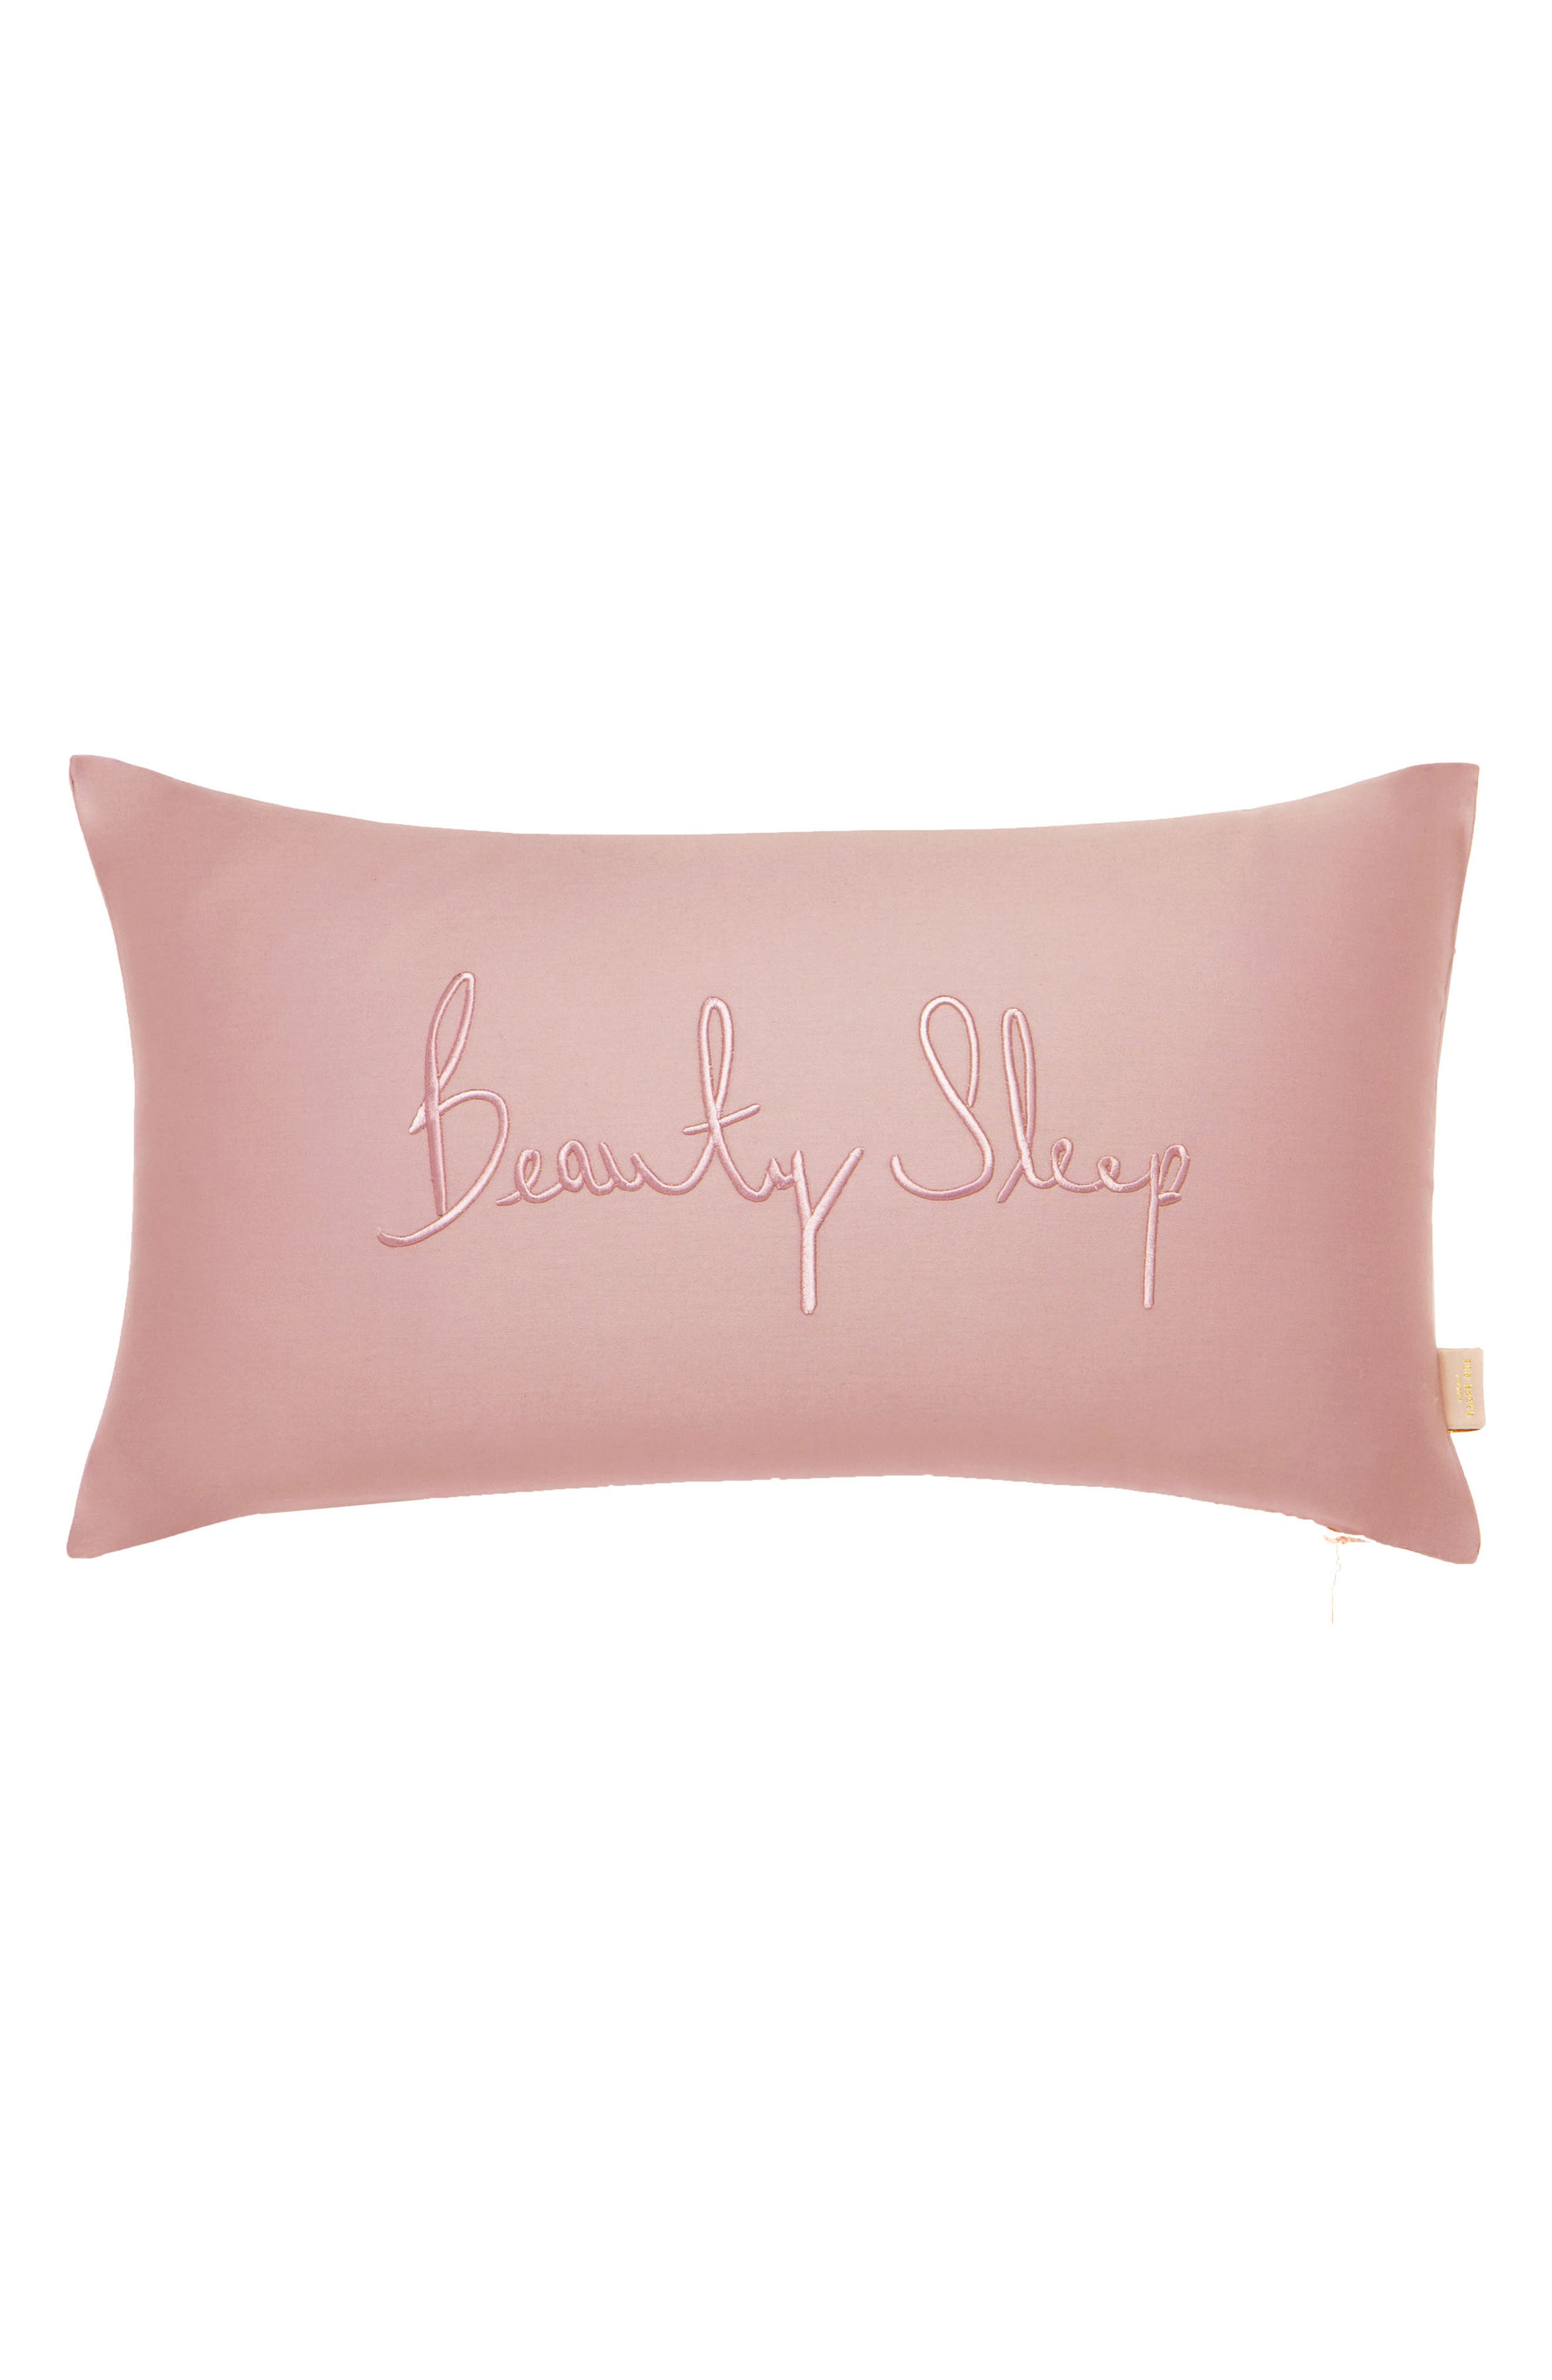 TED BAKER LONDON,                             Beauty Sleep Accent Pillows,                             Main thumbnail 1, color,                             PINK